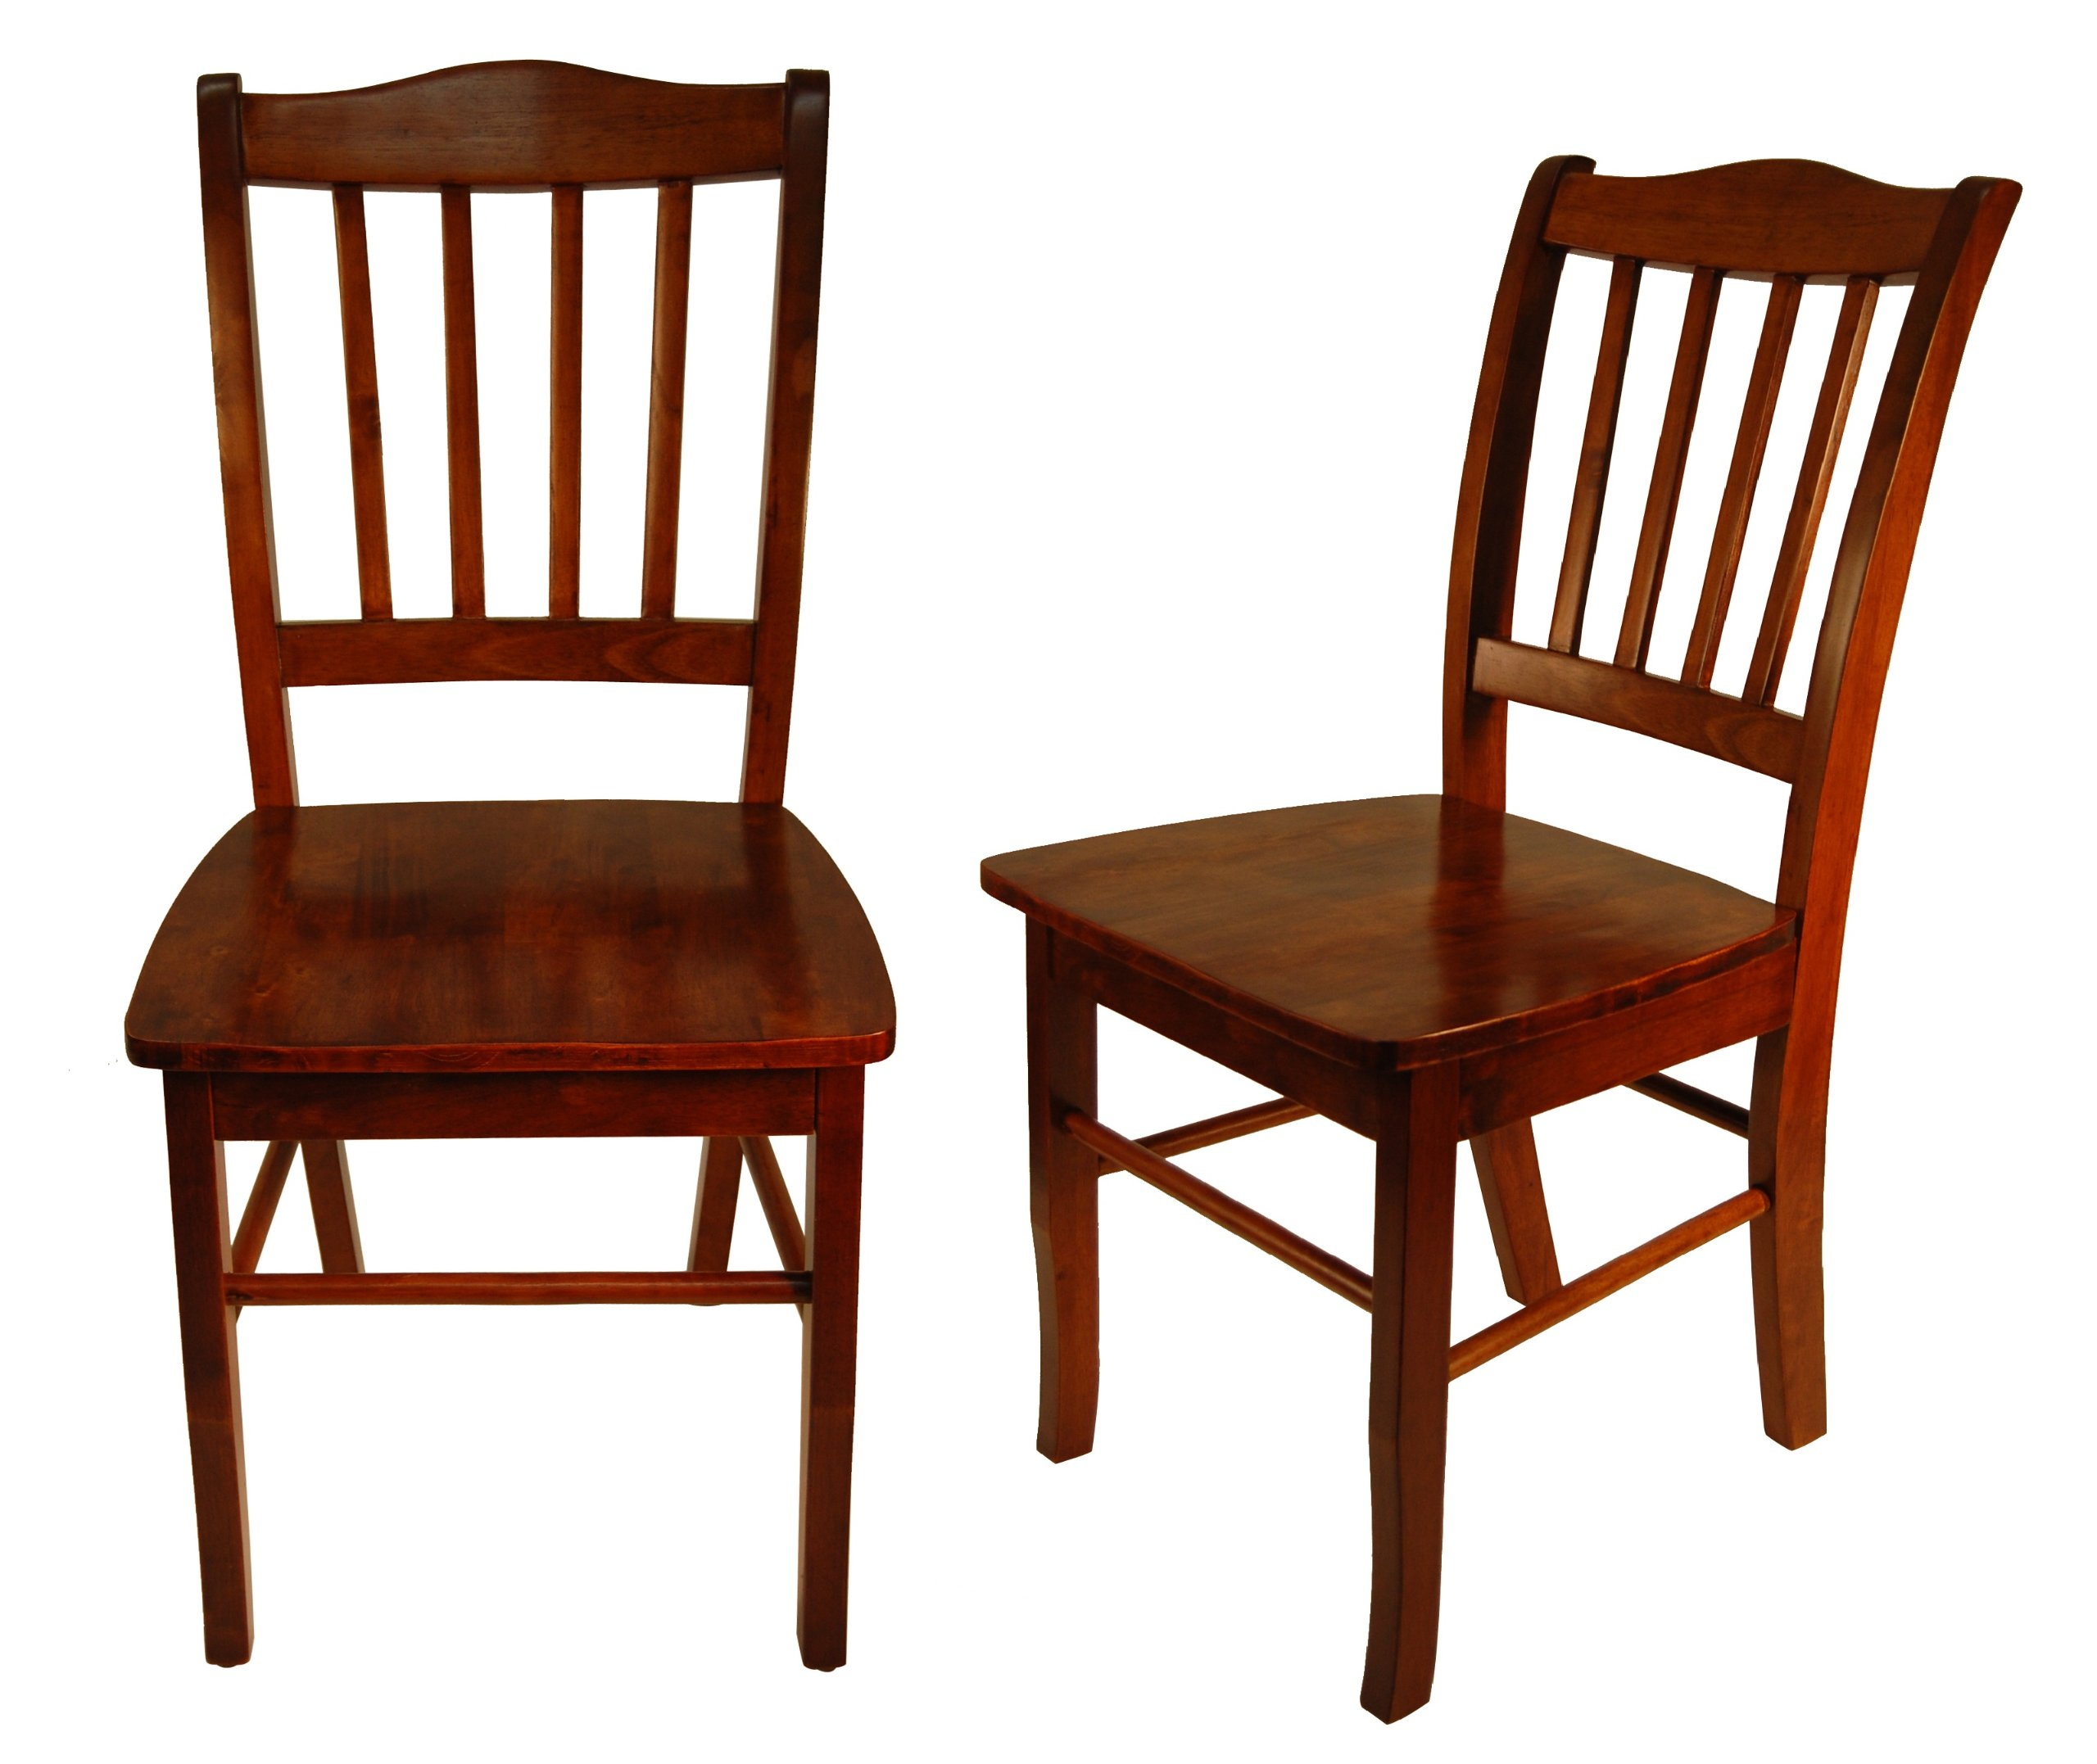 Boraam 30636 Shaker Chair, Walnut, Set of 2